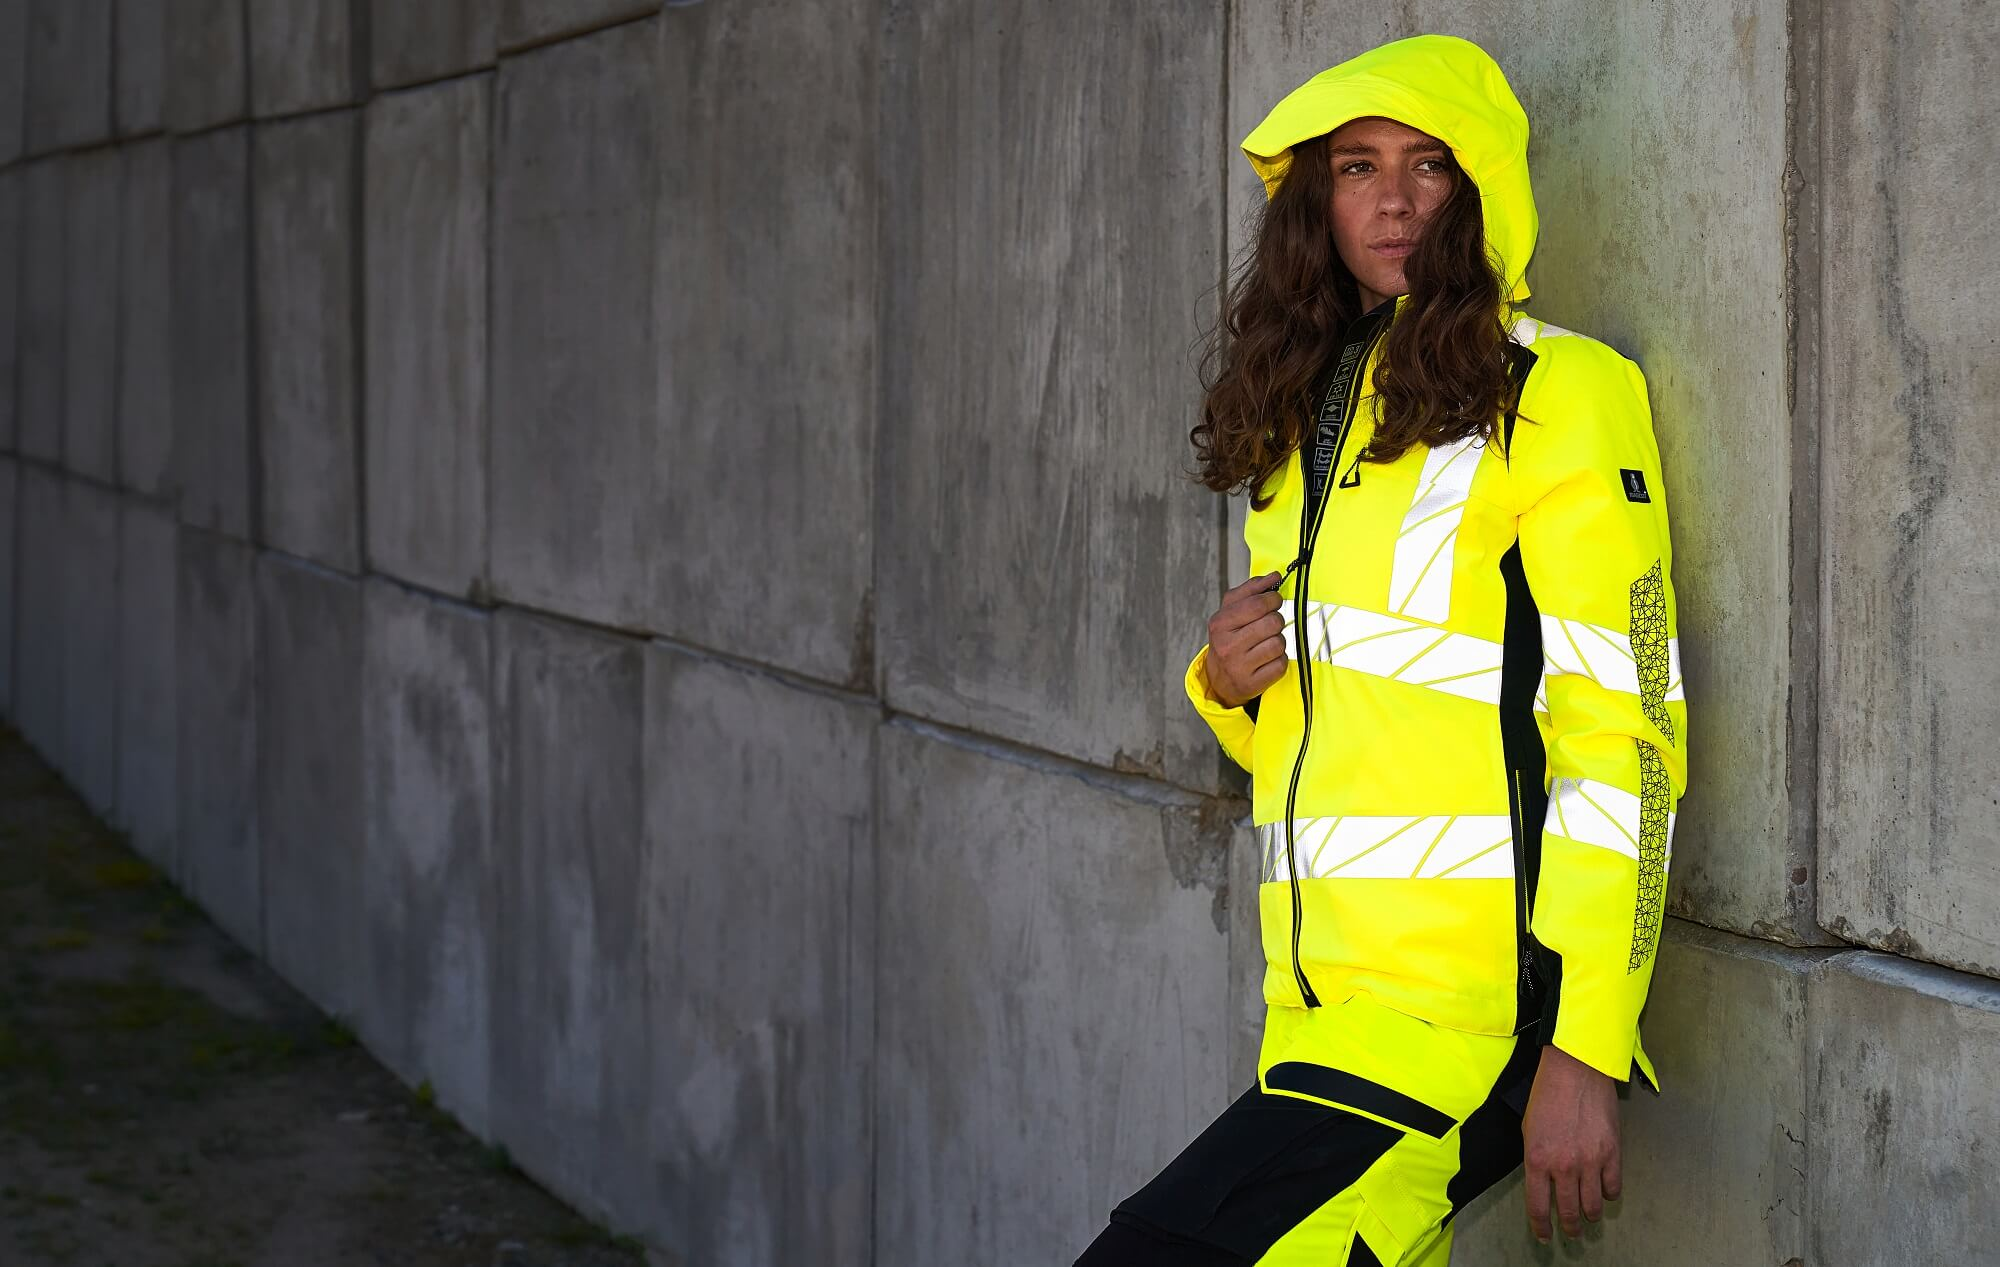 Winter Jacket & Work pants for women - Fluorescent yellow - MASCOT® ACCELERATE SAFE